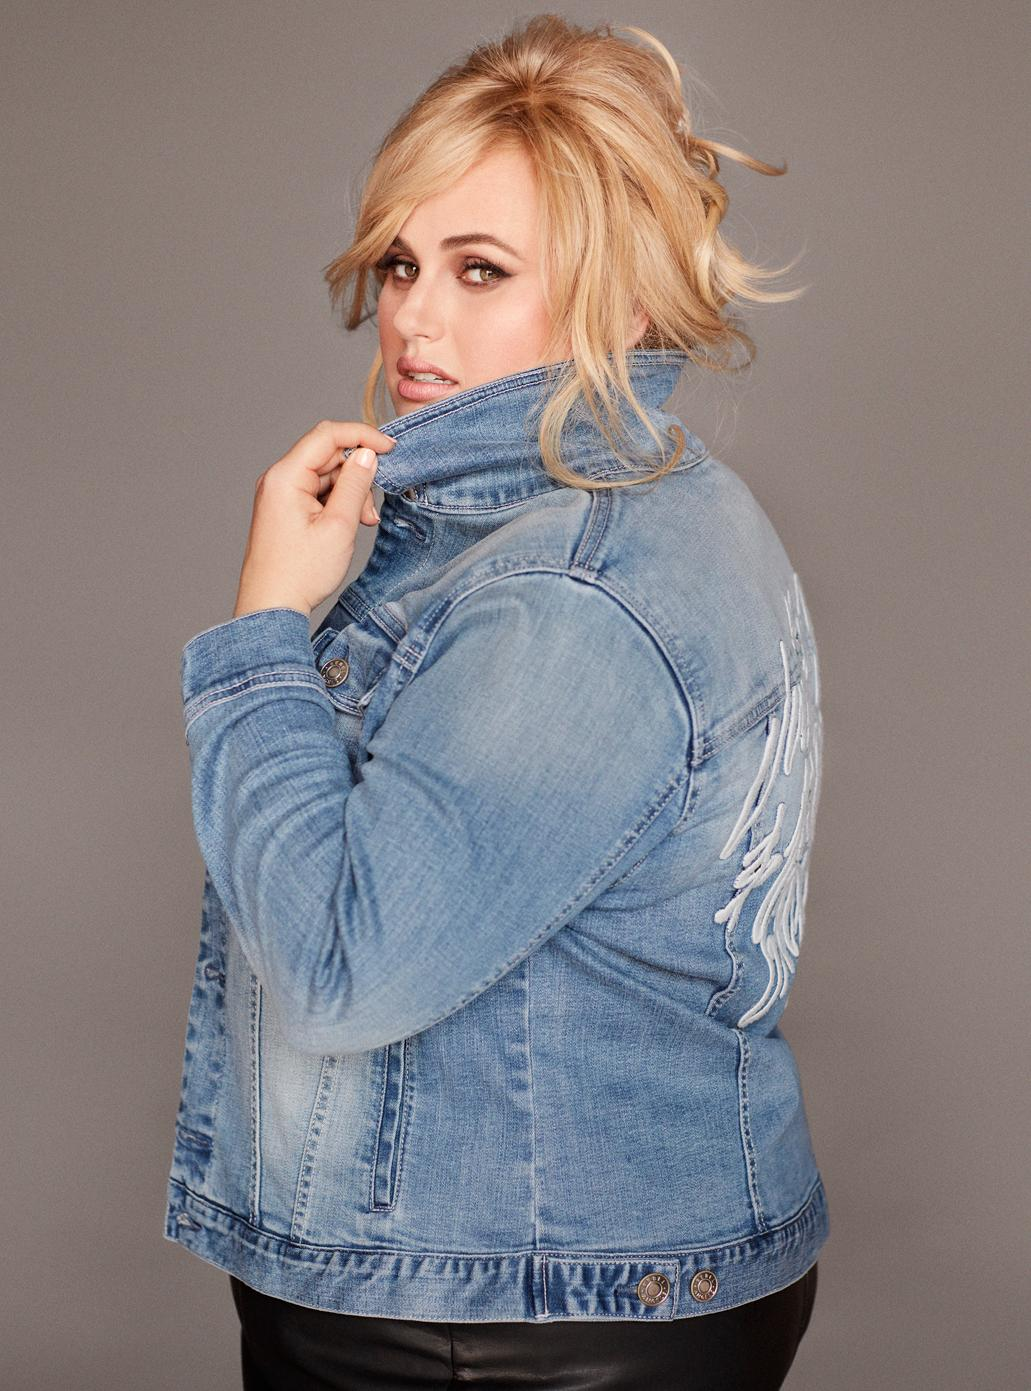 "Oh Rebel, how we love thee! The actress and comedian (known for her roles in ""Bridesmaids"" and the ""Pitch Perfect"" franchise), visited downtown Seattle Nordstrom over the weekend to launch her new collection, Rebel Wilson x Angels. The plus-size collection includes denim, graphic tees, statement tops, jacketes and dresses for women sizes 14-24. Wilson posed with fans and signed merchandise, which is now available for purchase in Nordstrom stores. (Photo: Nordstrom)"